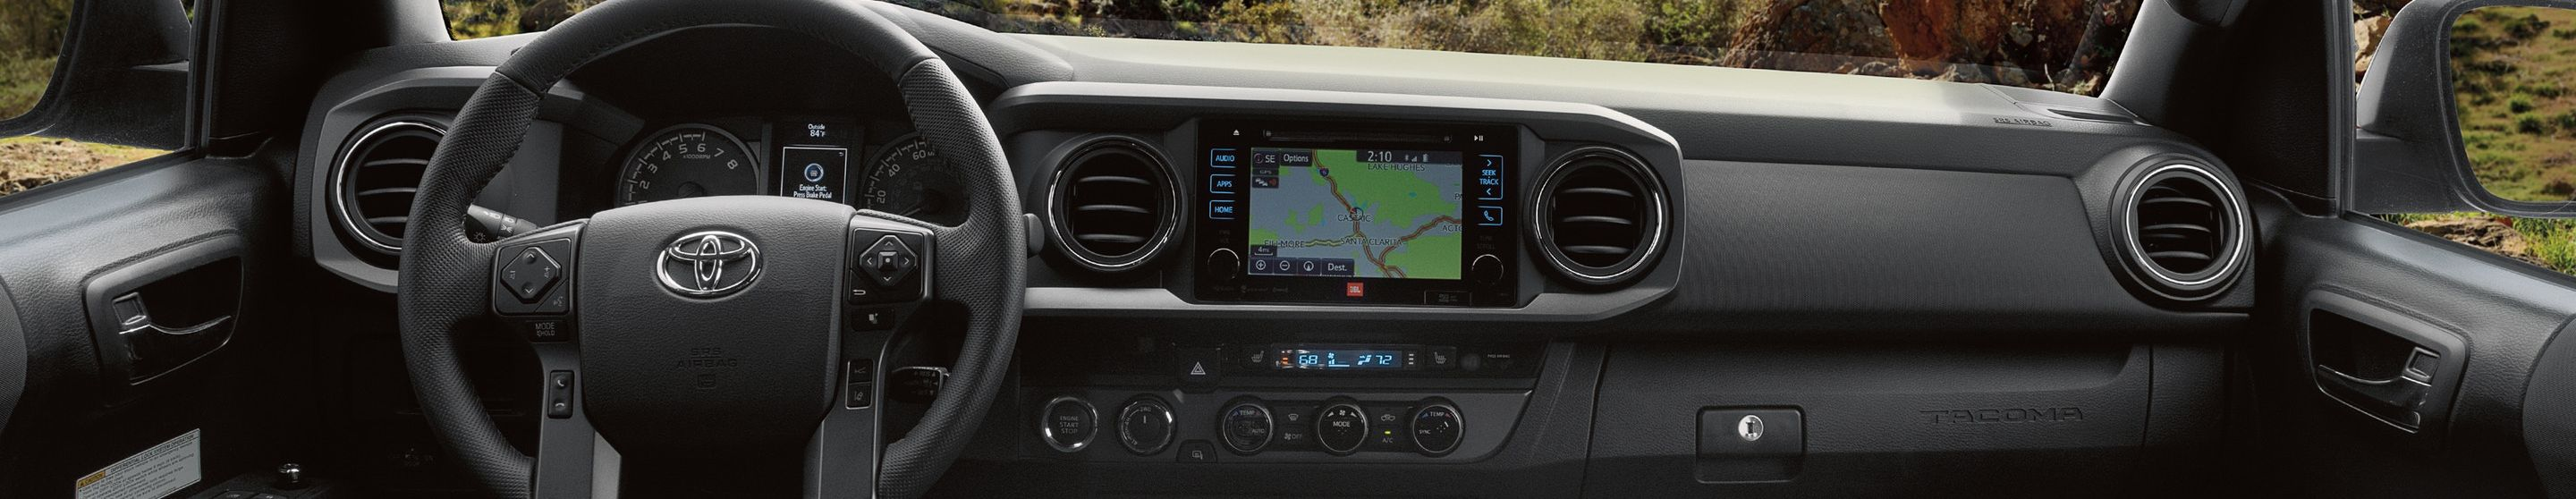 2019 Toyota Tacoma Center Console